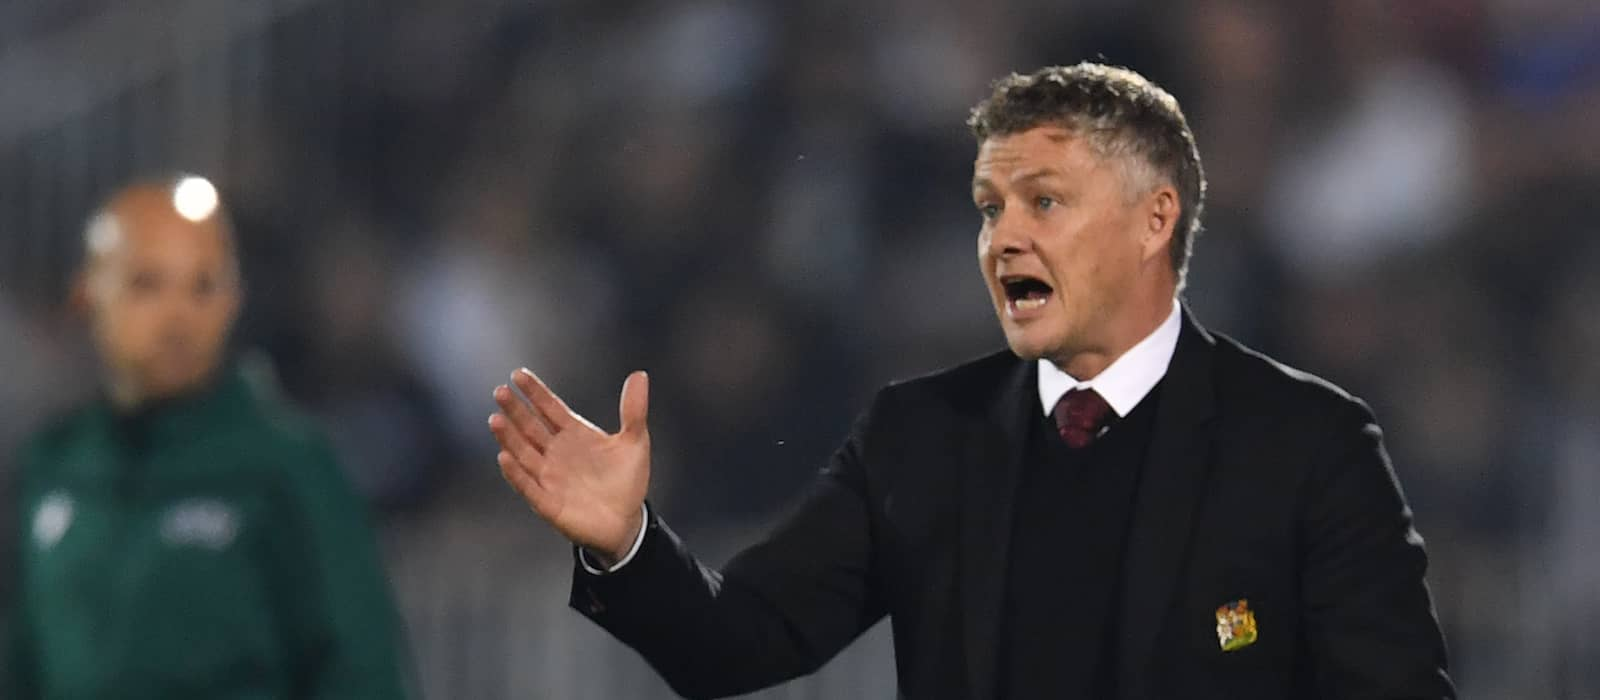 Manchester United fans furious with this Ole Gunnar Solskjaer comment ahead of Norwich City clash